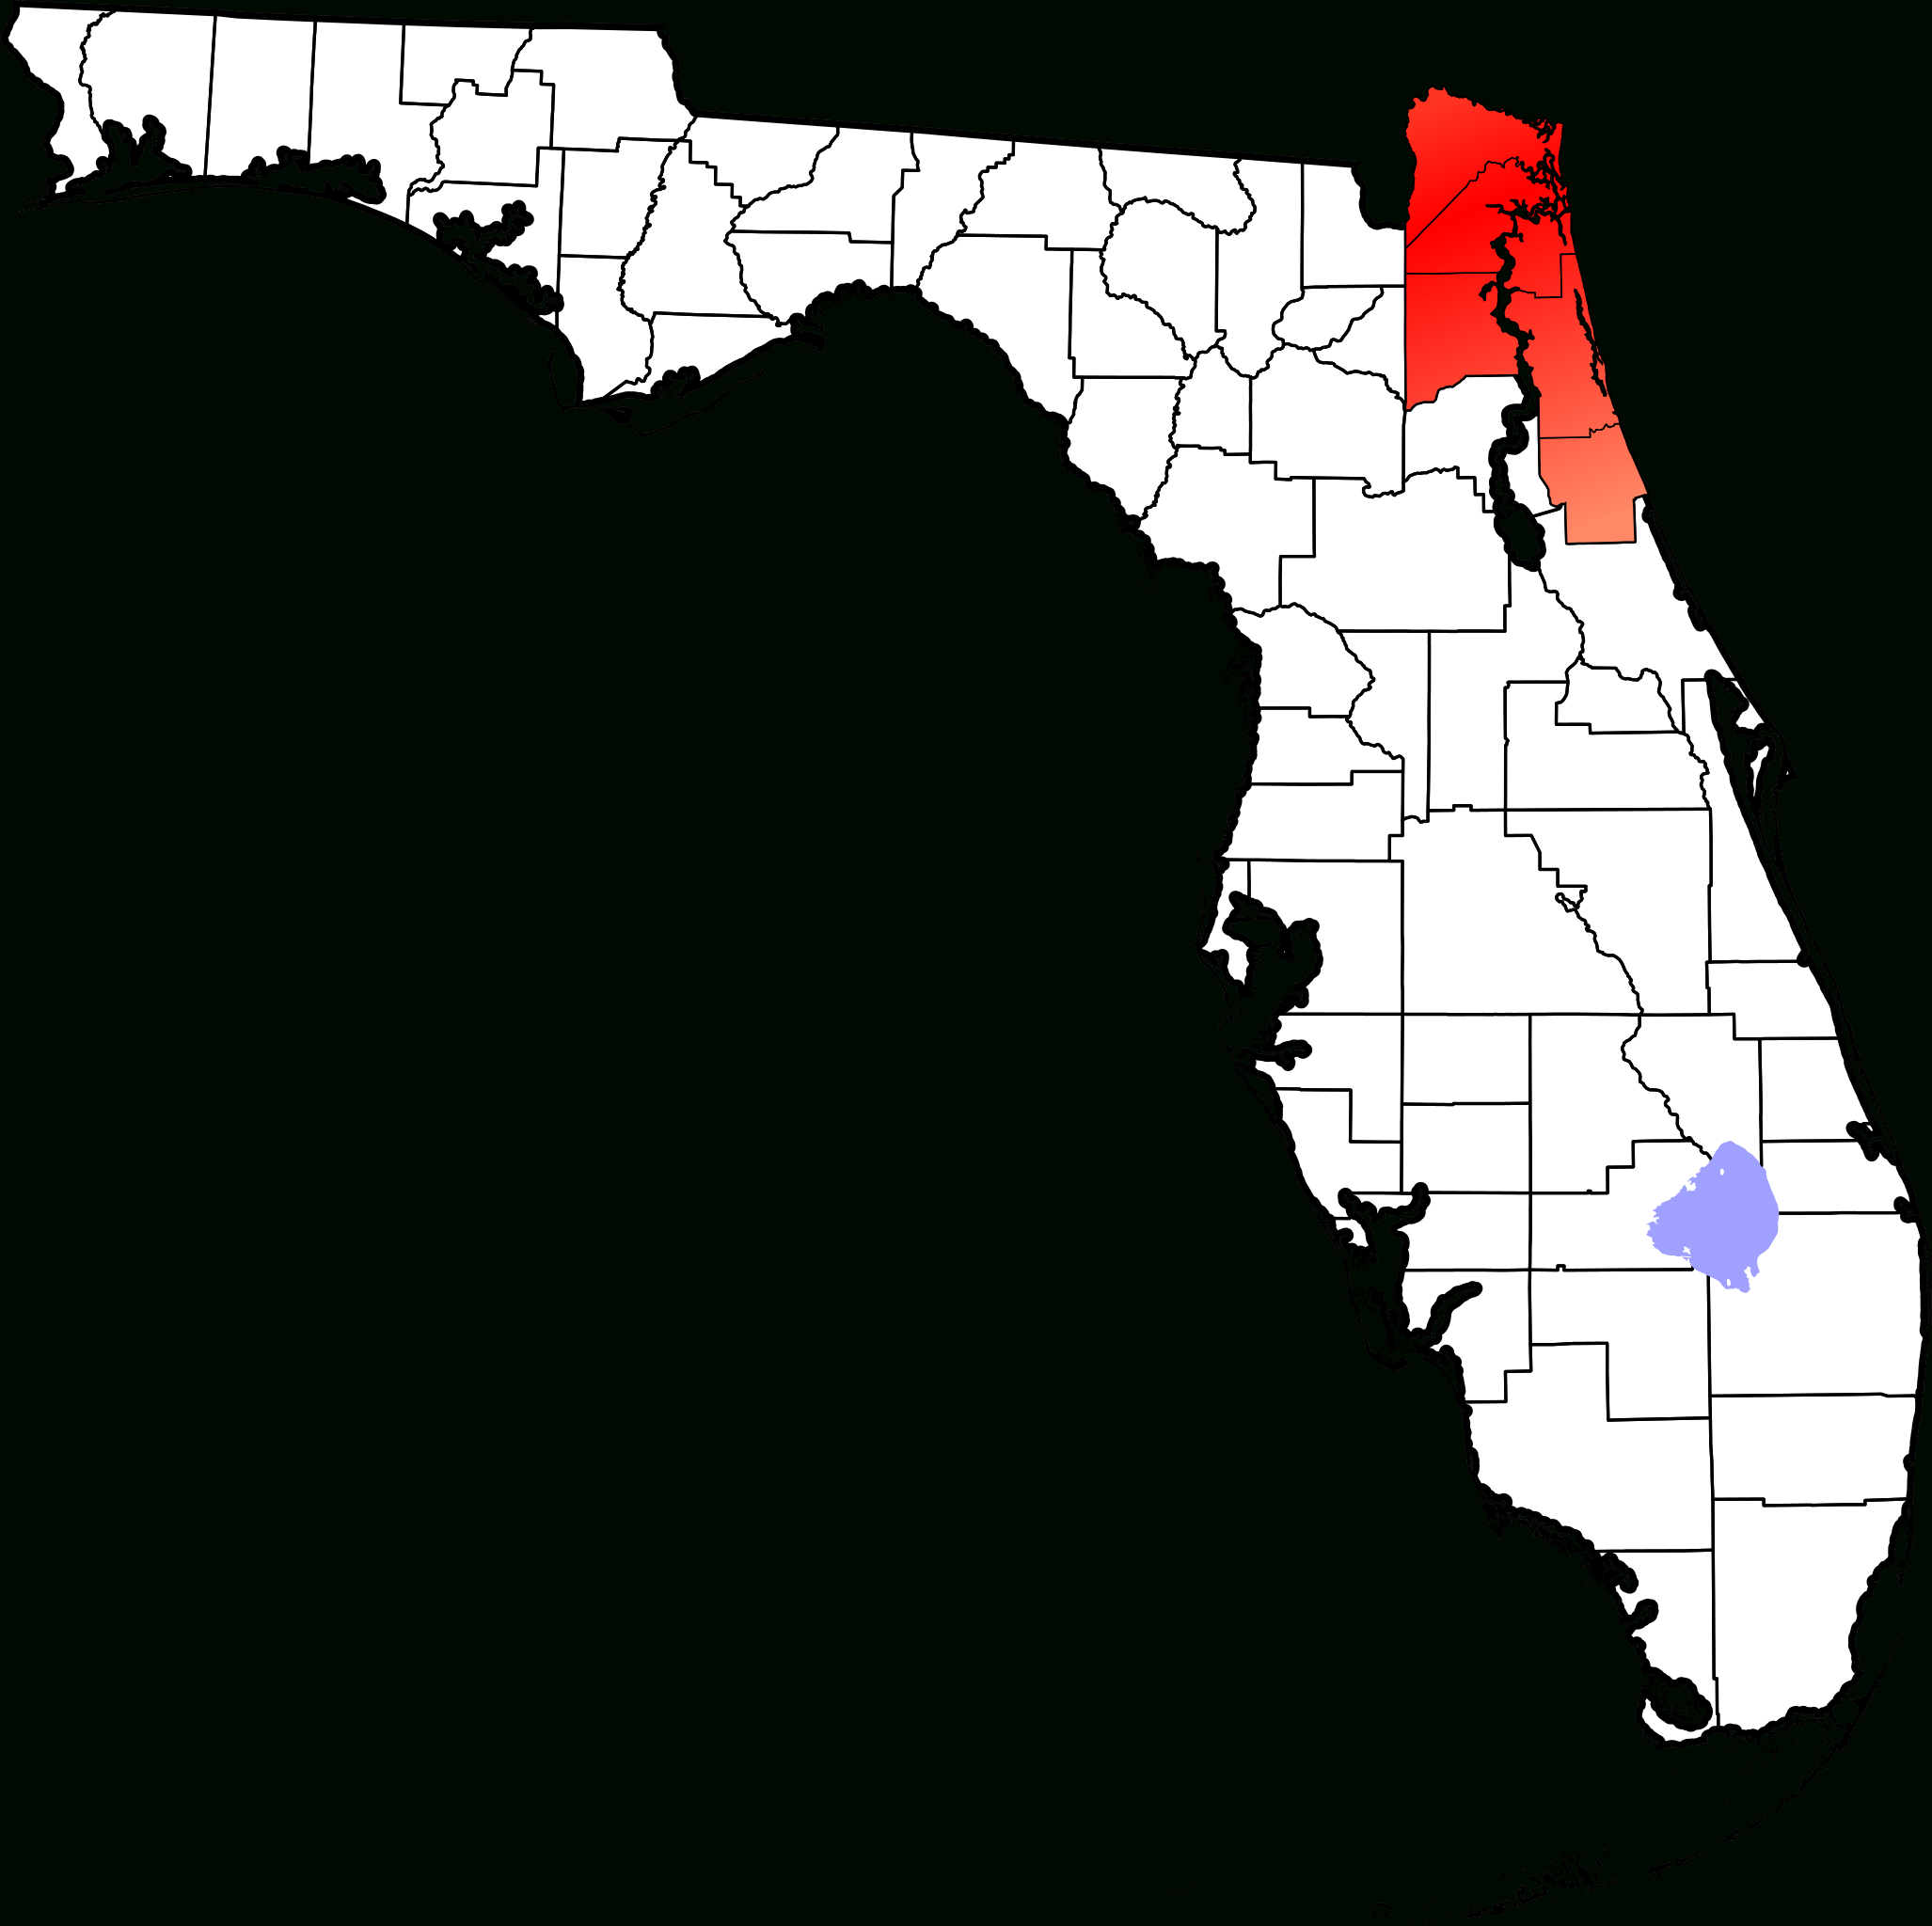 Fichier:map Of Florida Highlighting First Coast.svg — Wikipédia - Florida Coast Map